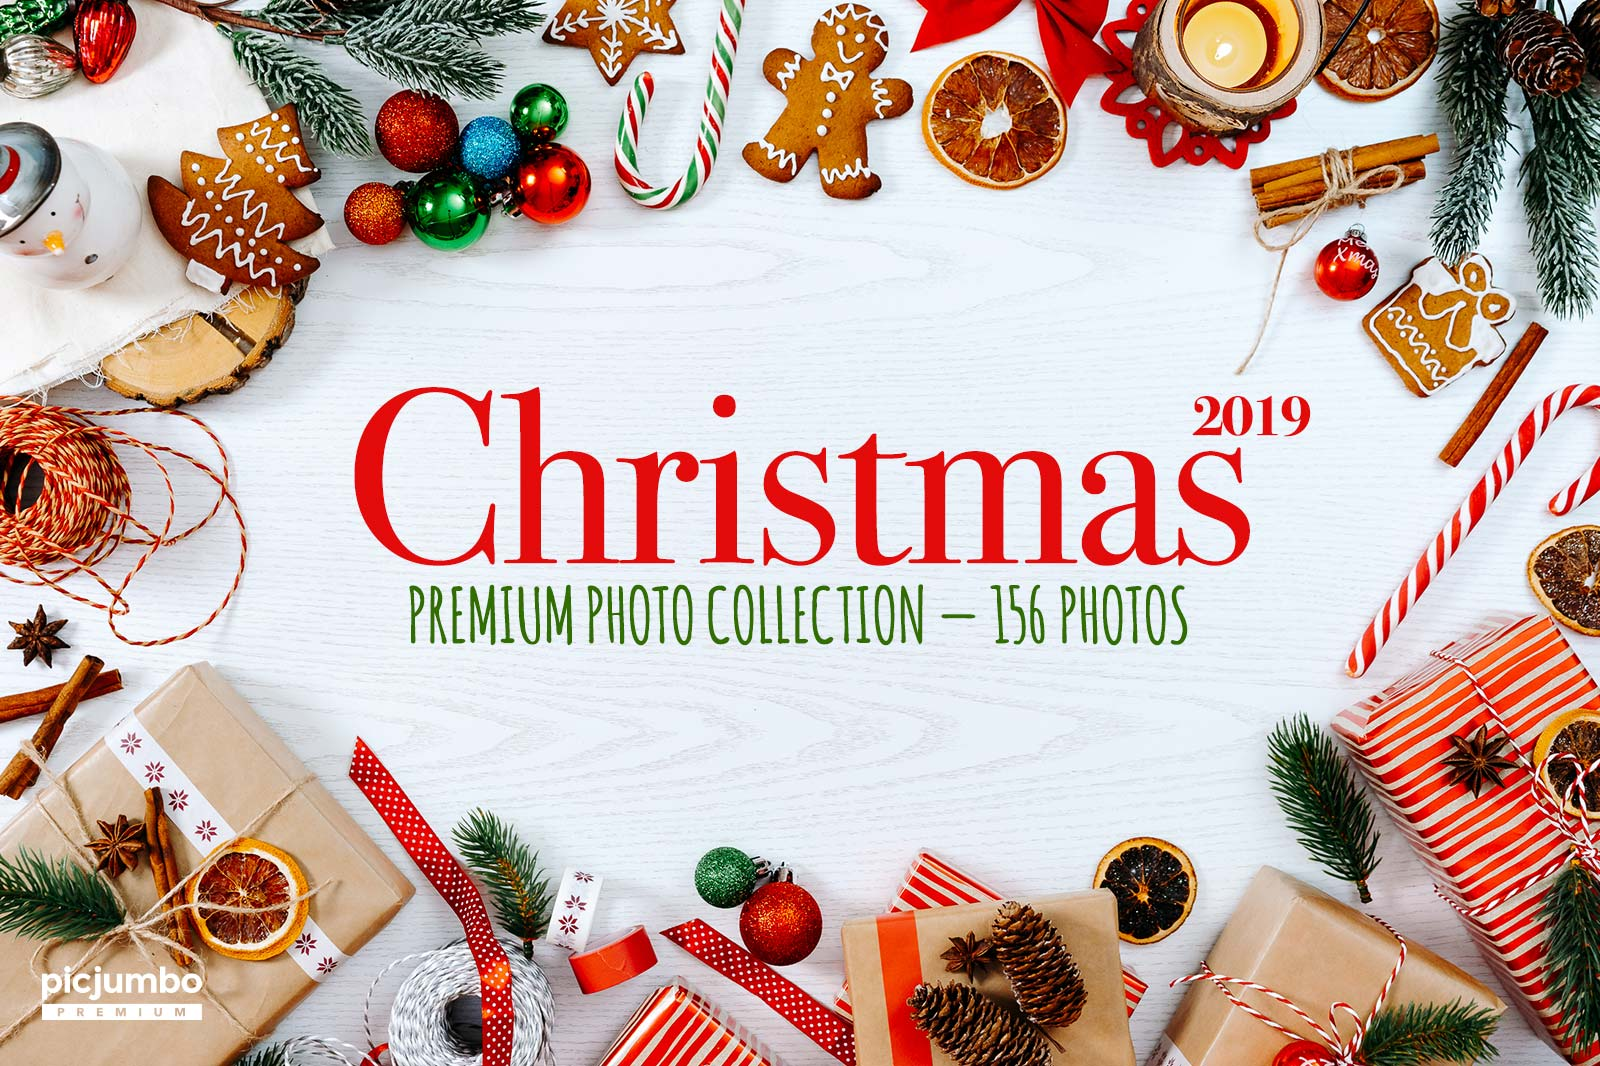 Click here to see Christmas Photos 2019 PREMIUM Collection!